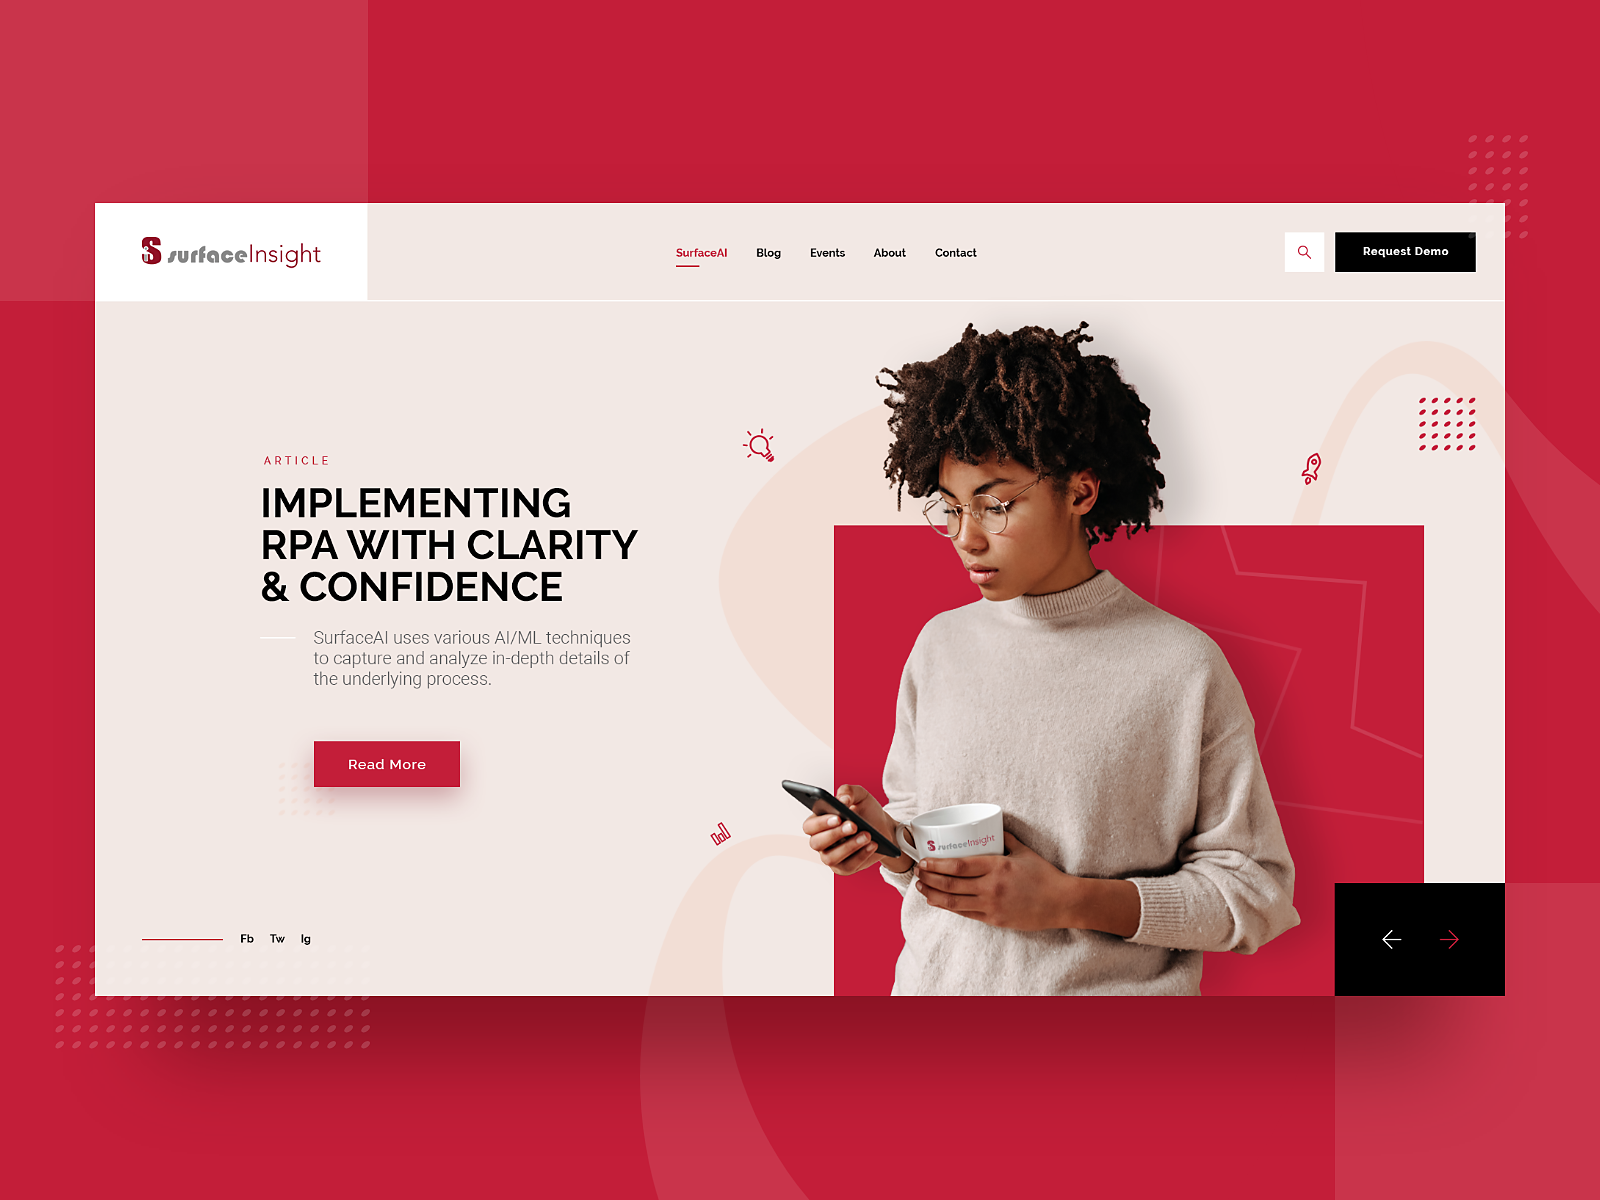 Consulting Company Web Design Mockup Company Consulting Design Mockup Web Web Design Mockup Web Design Trends Website Design Layout